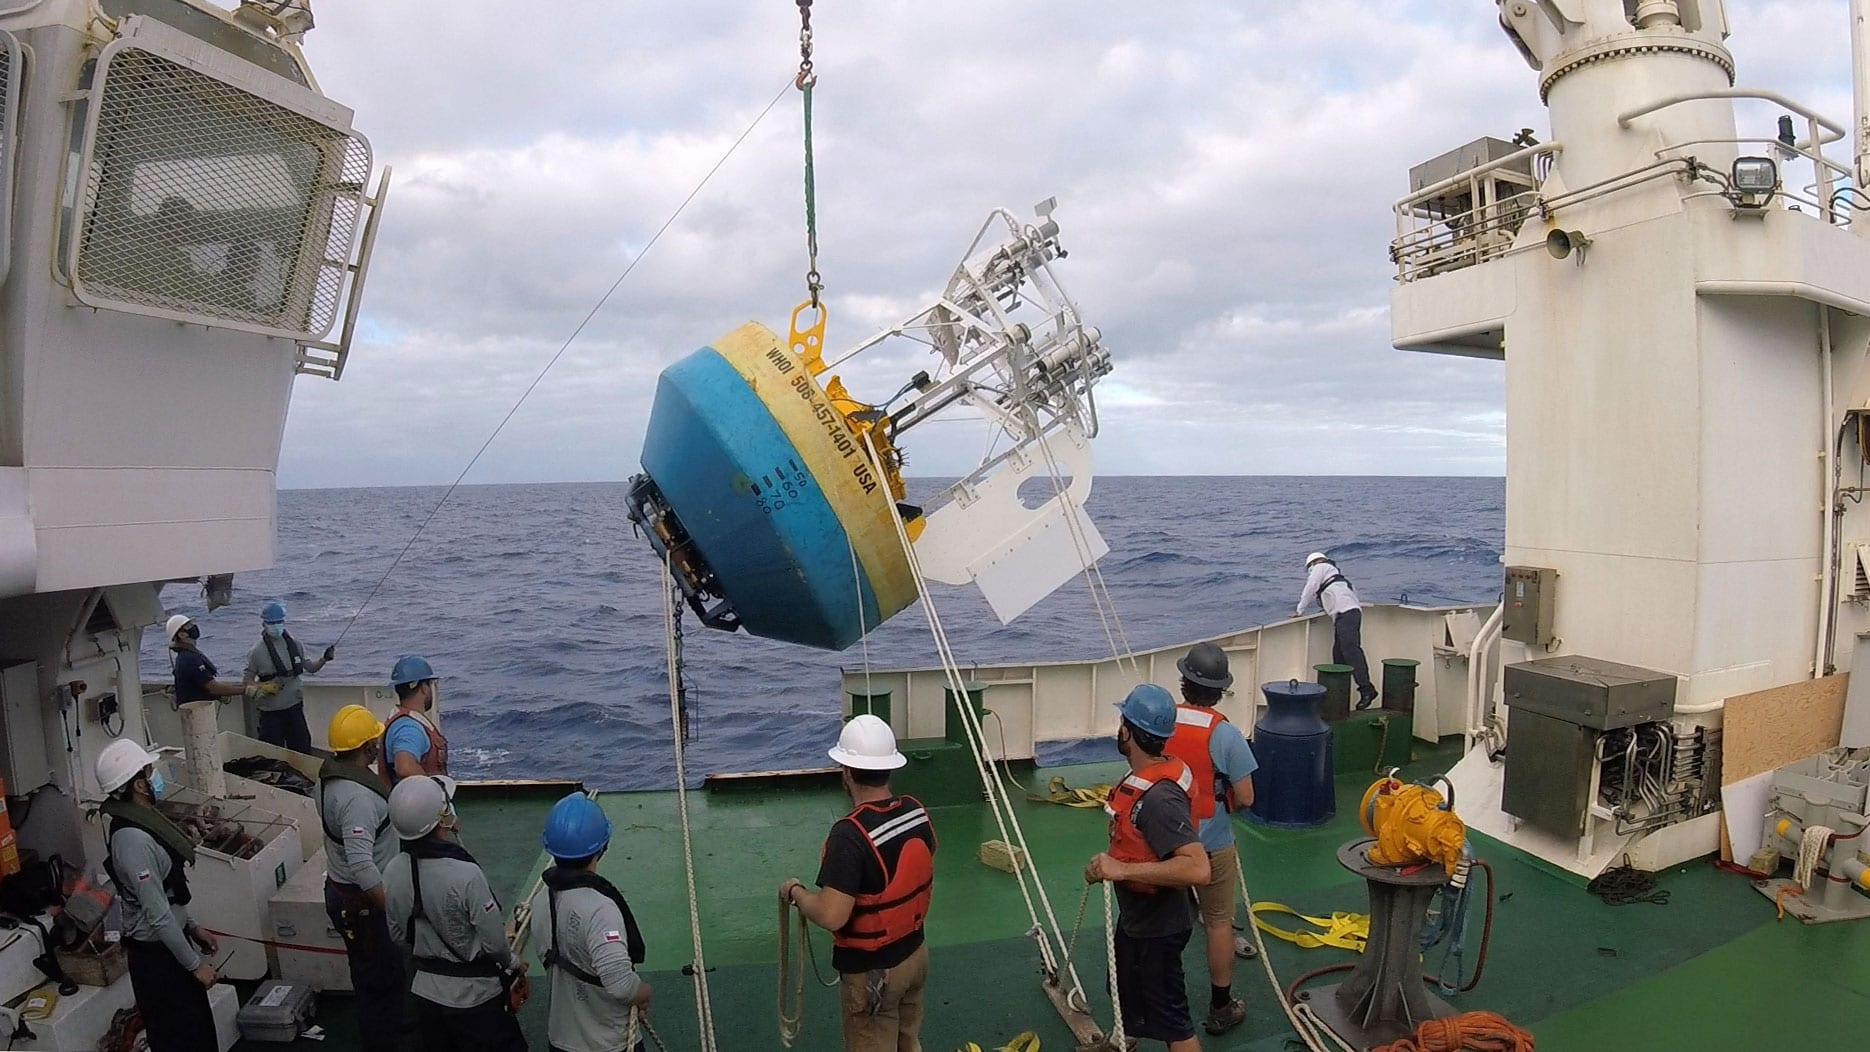 Amidst pandemic, researchers deploy new monitoring station in tropical Pacific